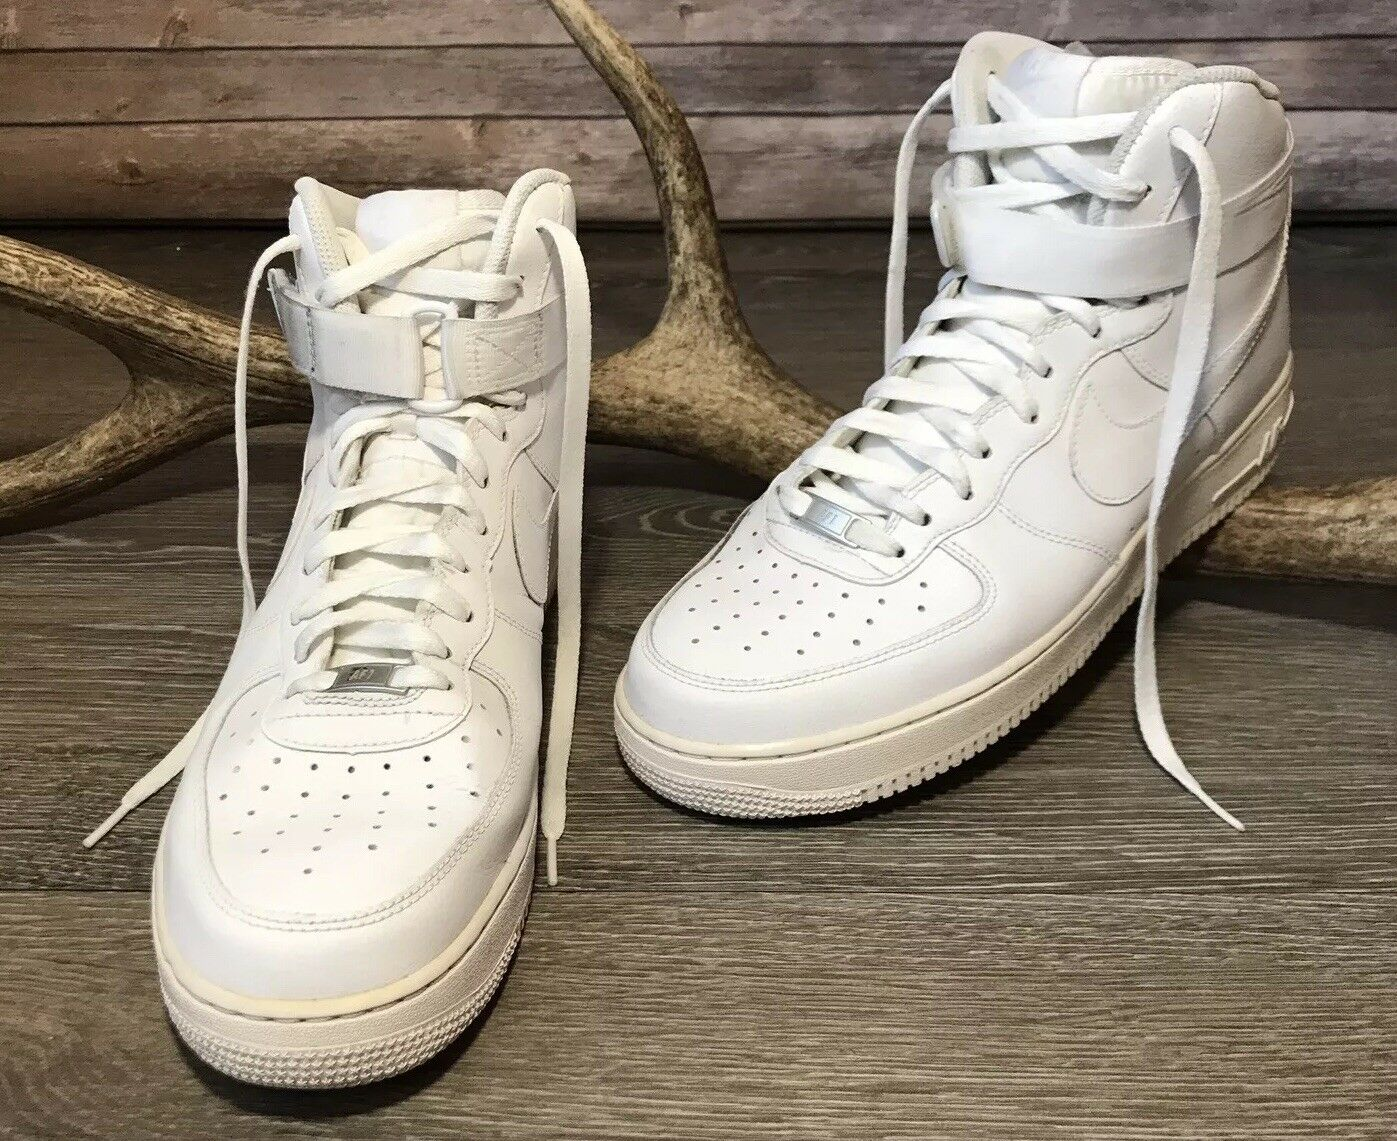 online store 776bc 0289f Nike Air Force 1 High 07 Men s shoes shoes shoes Sneakers 315121-115 12  Solid